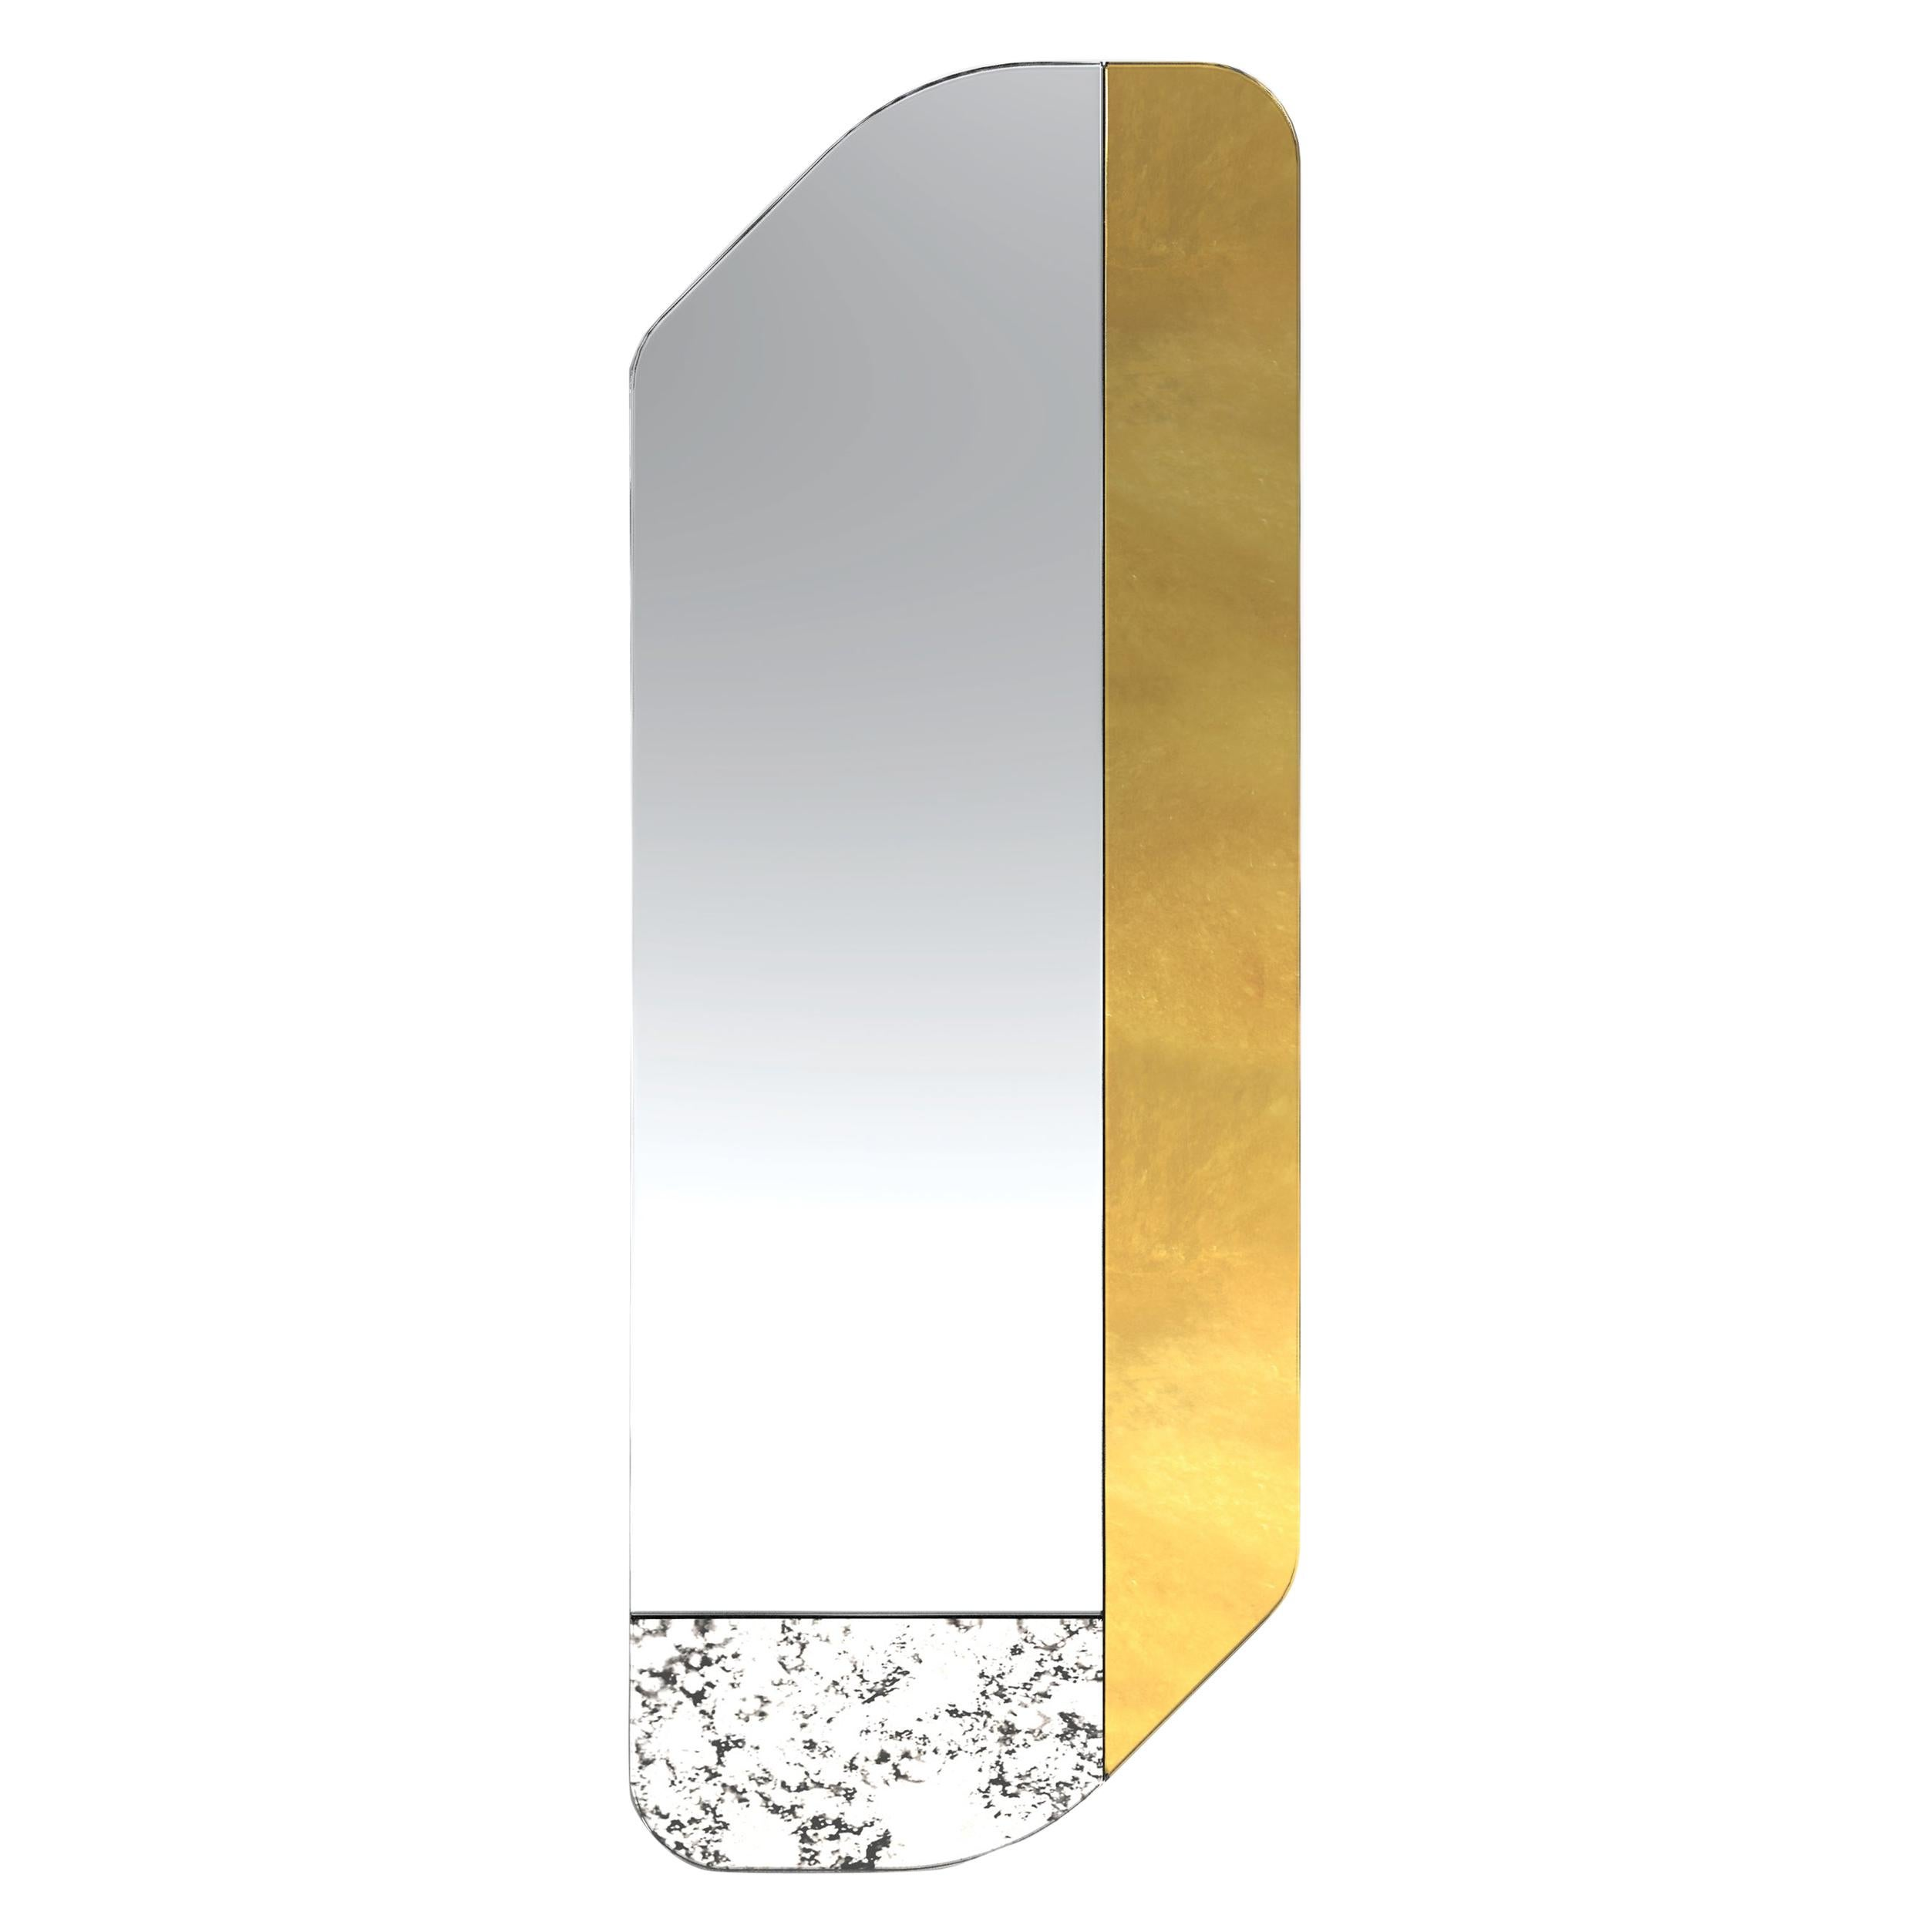 Gold and Speckled WG.C1.D Hand-Crafted Wall Mirror